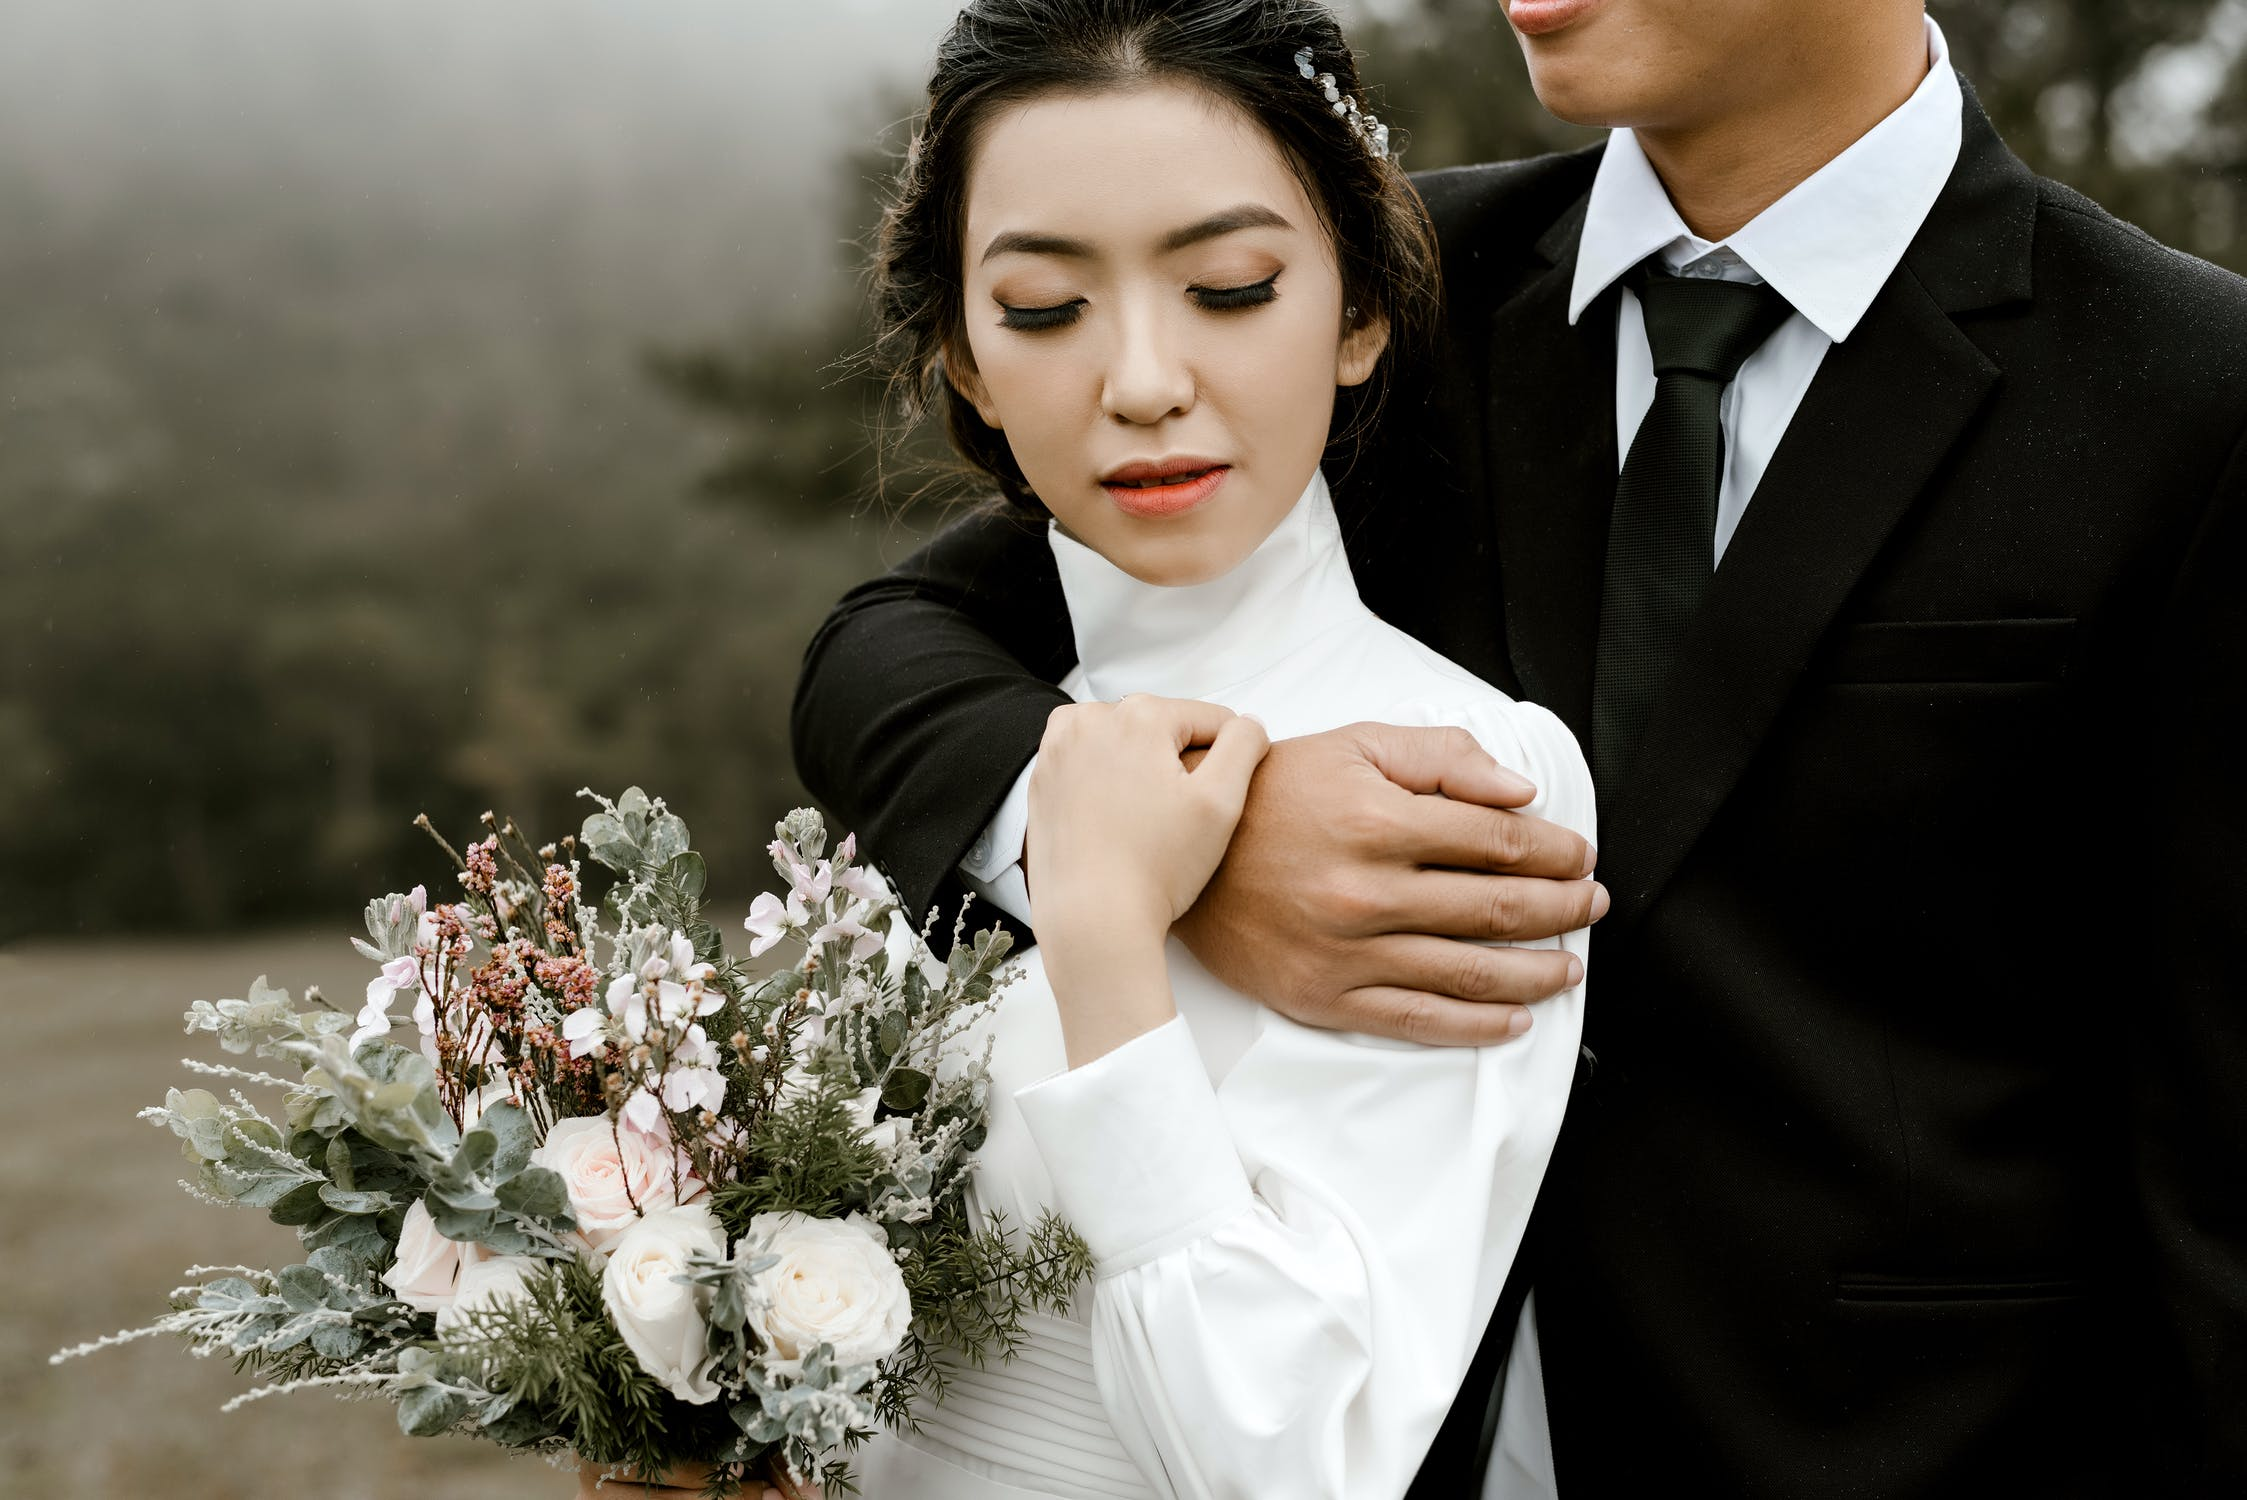 A couple on their wedding day. Man in suit has his arm wrapped protectively around his bride who is holding a bouquet.